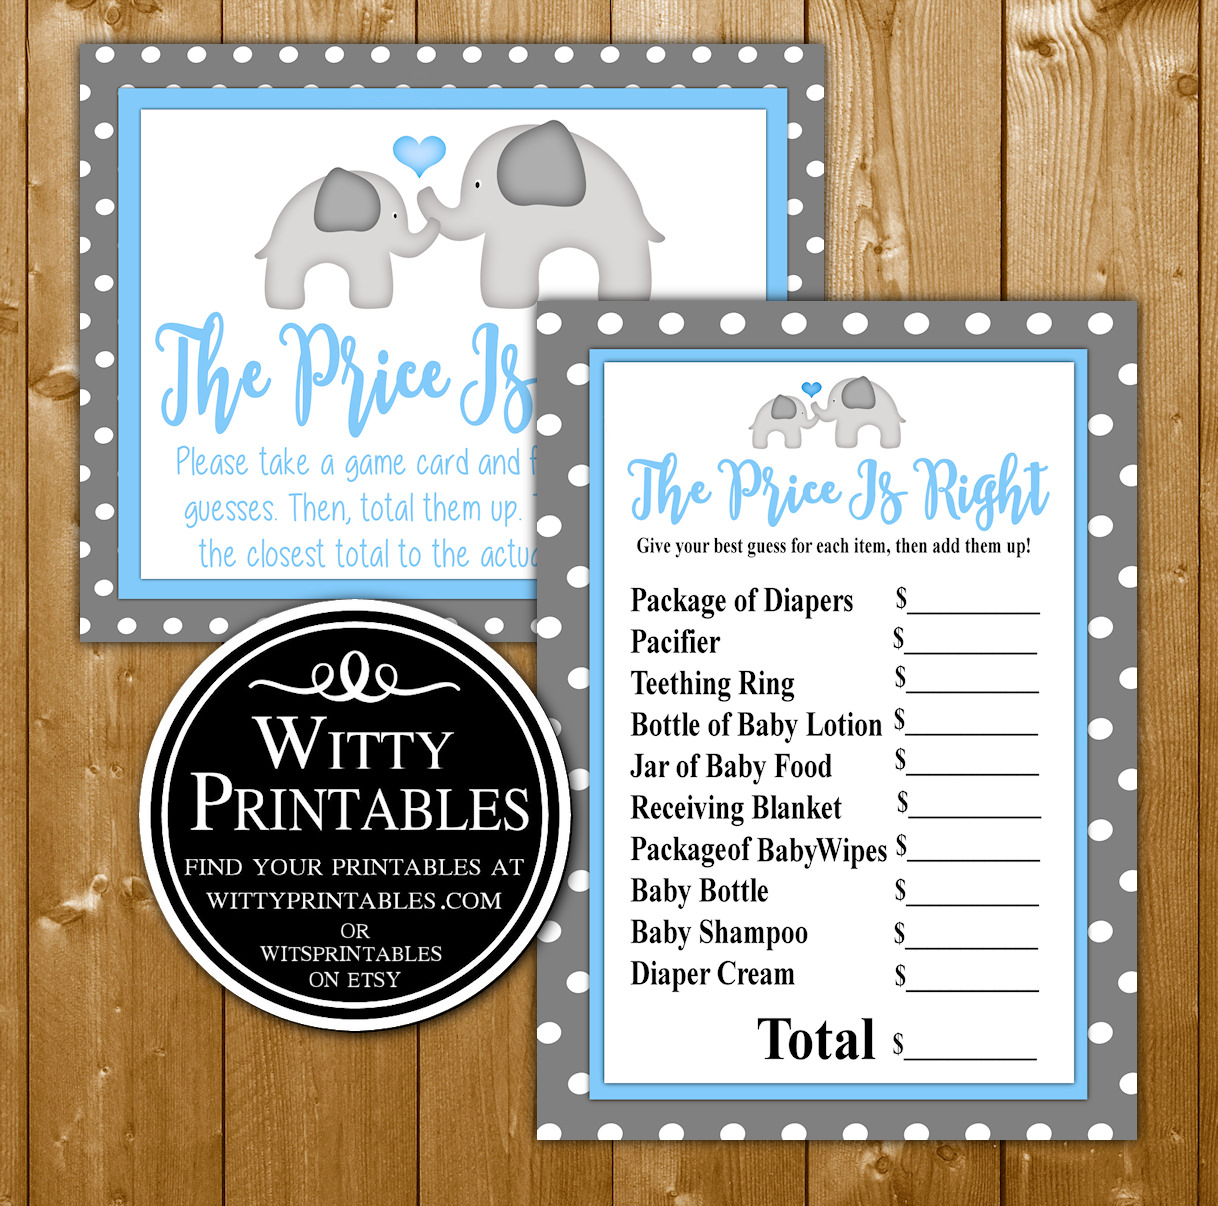 photograph about Price is Right Baby Shower Game Printable referred to as Expense Is Immediately Boy or girl Shower Activity Blue Elephant Topic for a Lady Child Shower